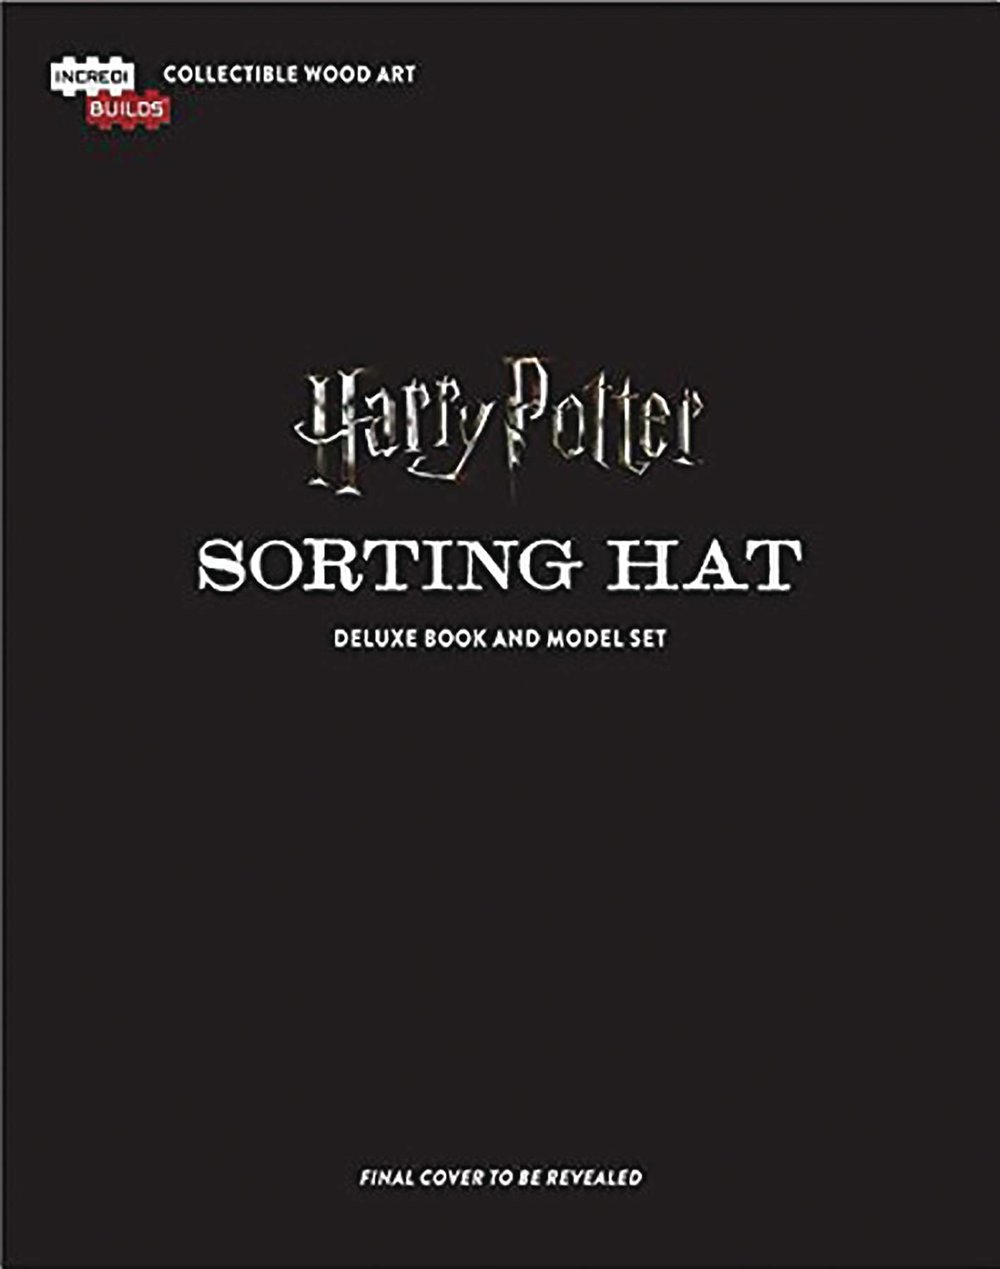 INCREDIBUILDS HARRY POTTER SORTING HAT DLX MODEL W BOOK.jpg